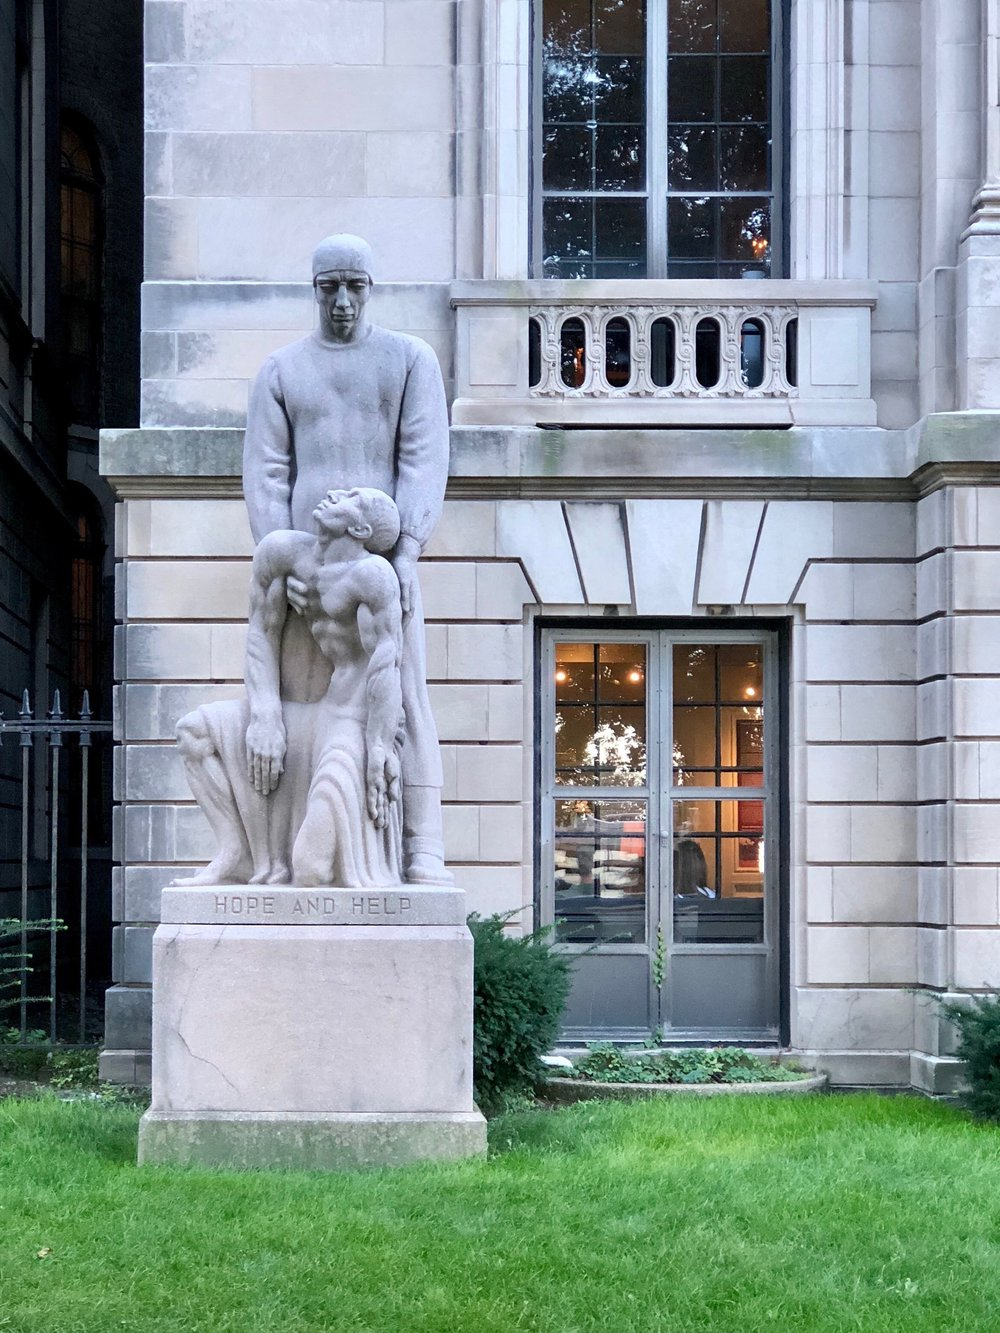 You can't miss the strange statue in front of the International Museum of Surgical Science just north of the Magnificent Mile shopping district